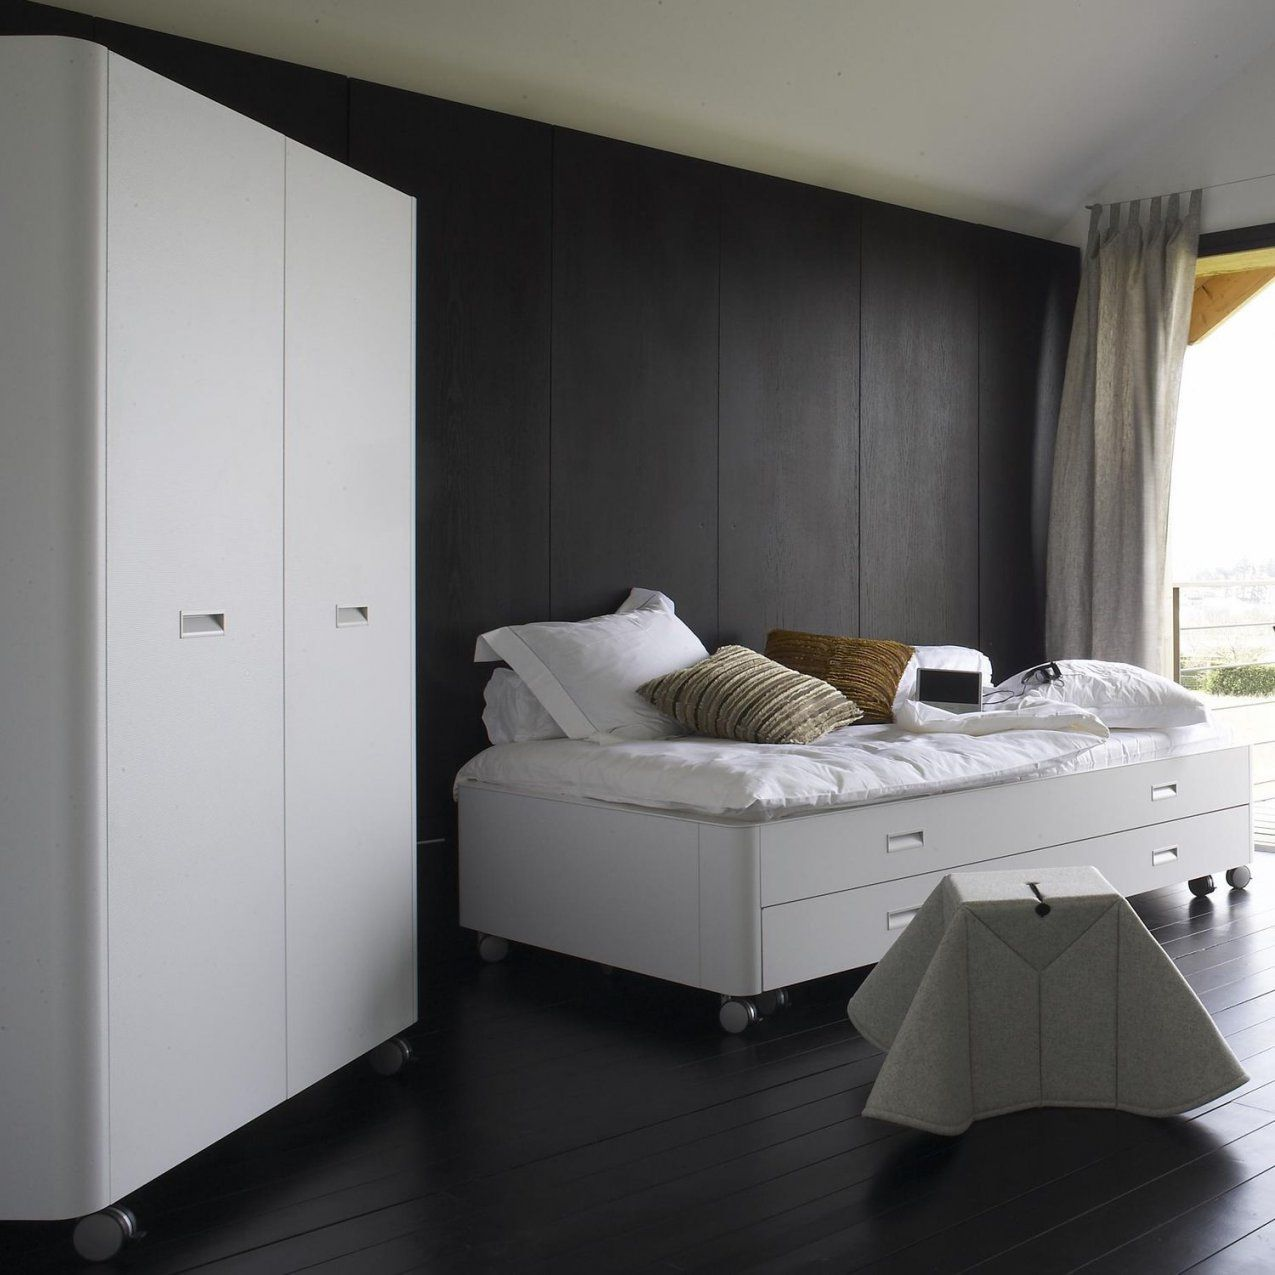 Jersey Bettwäsche Estella Single Bed Contemporary On Casters With Drawer Travel